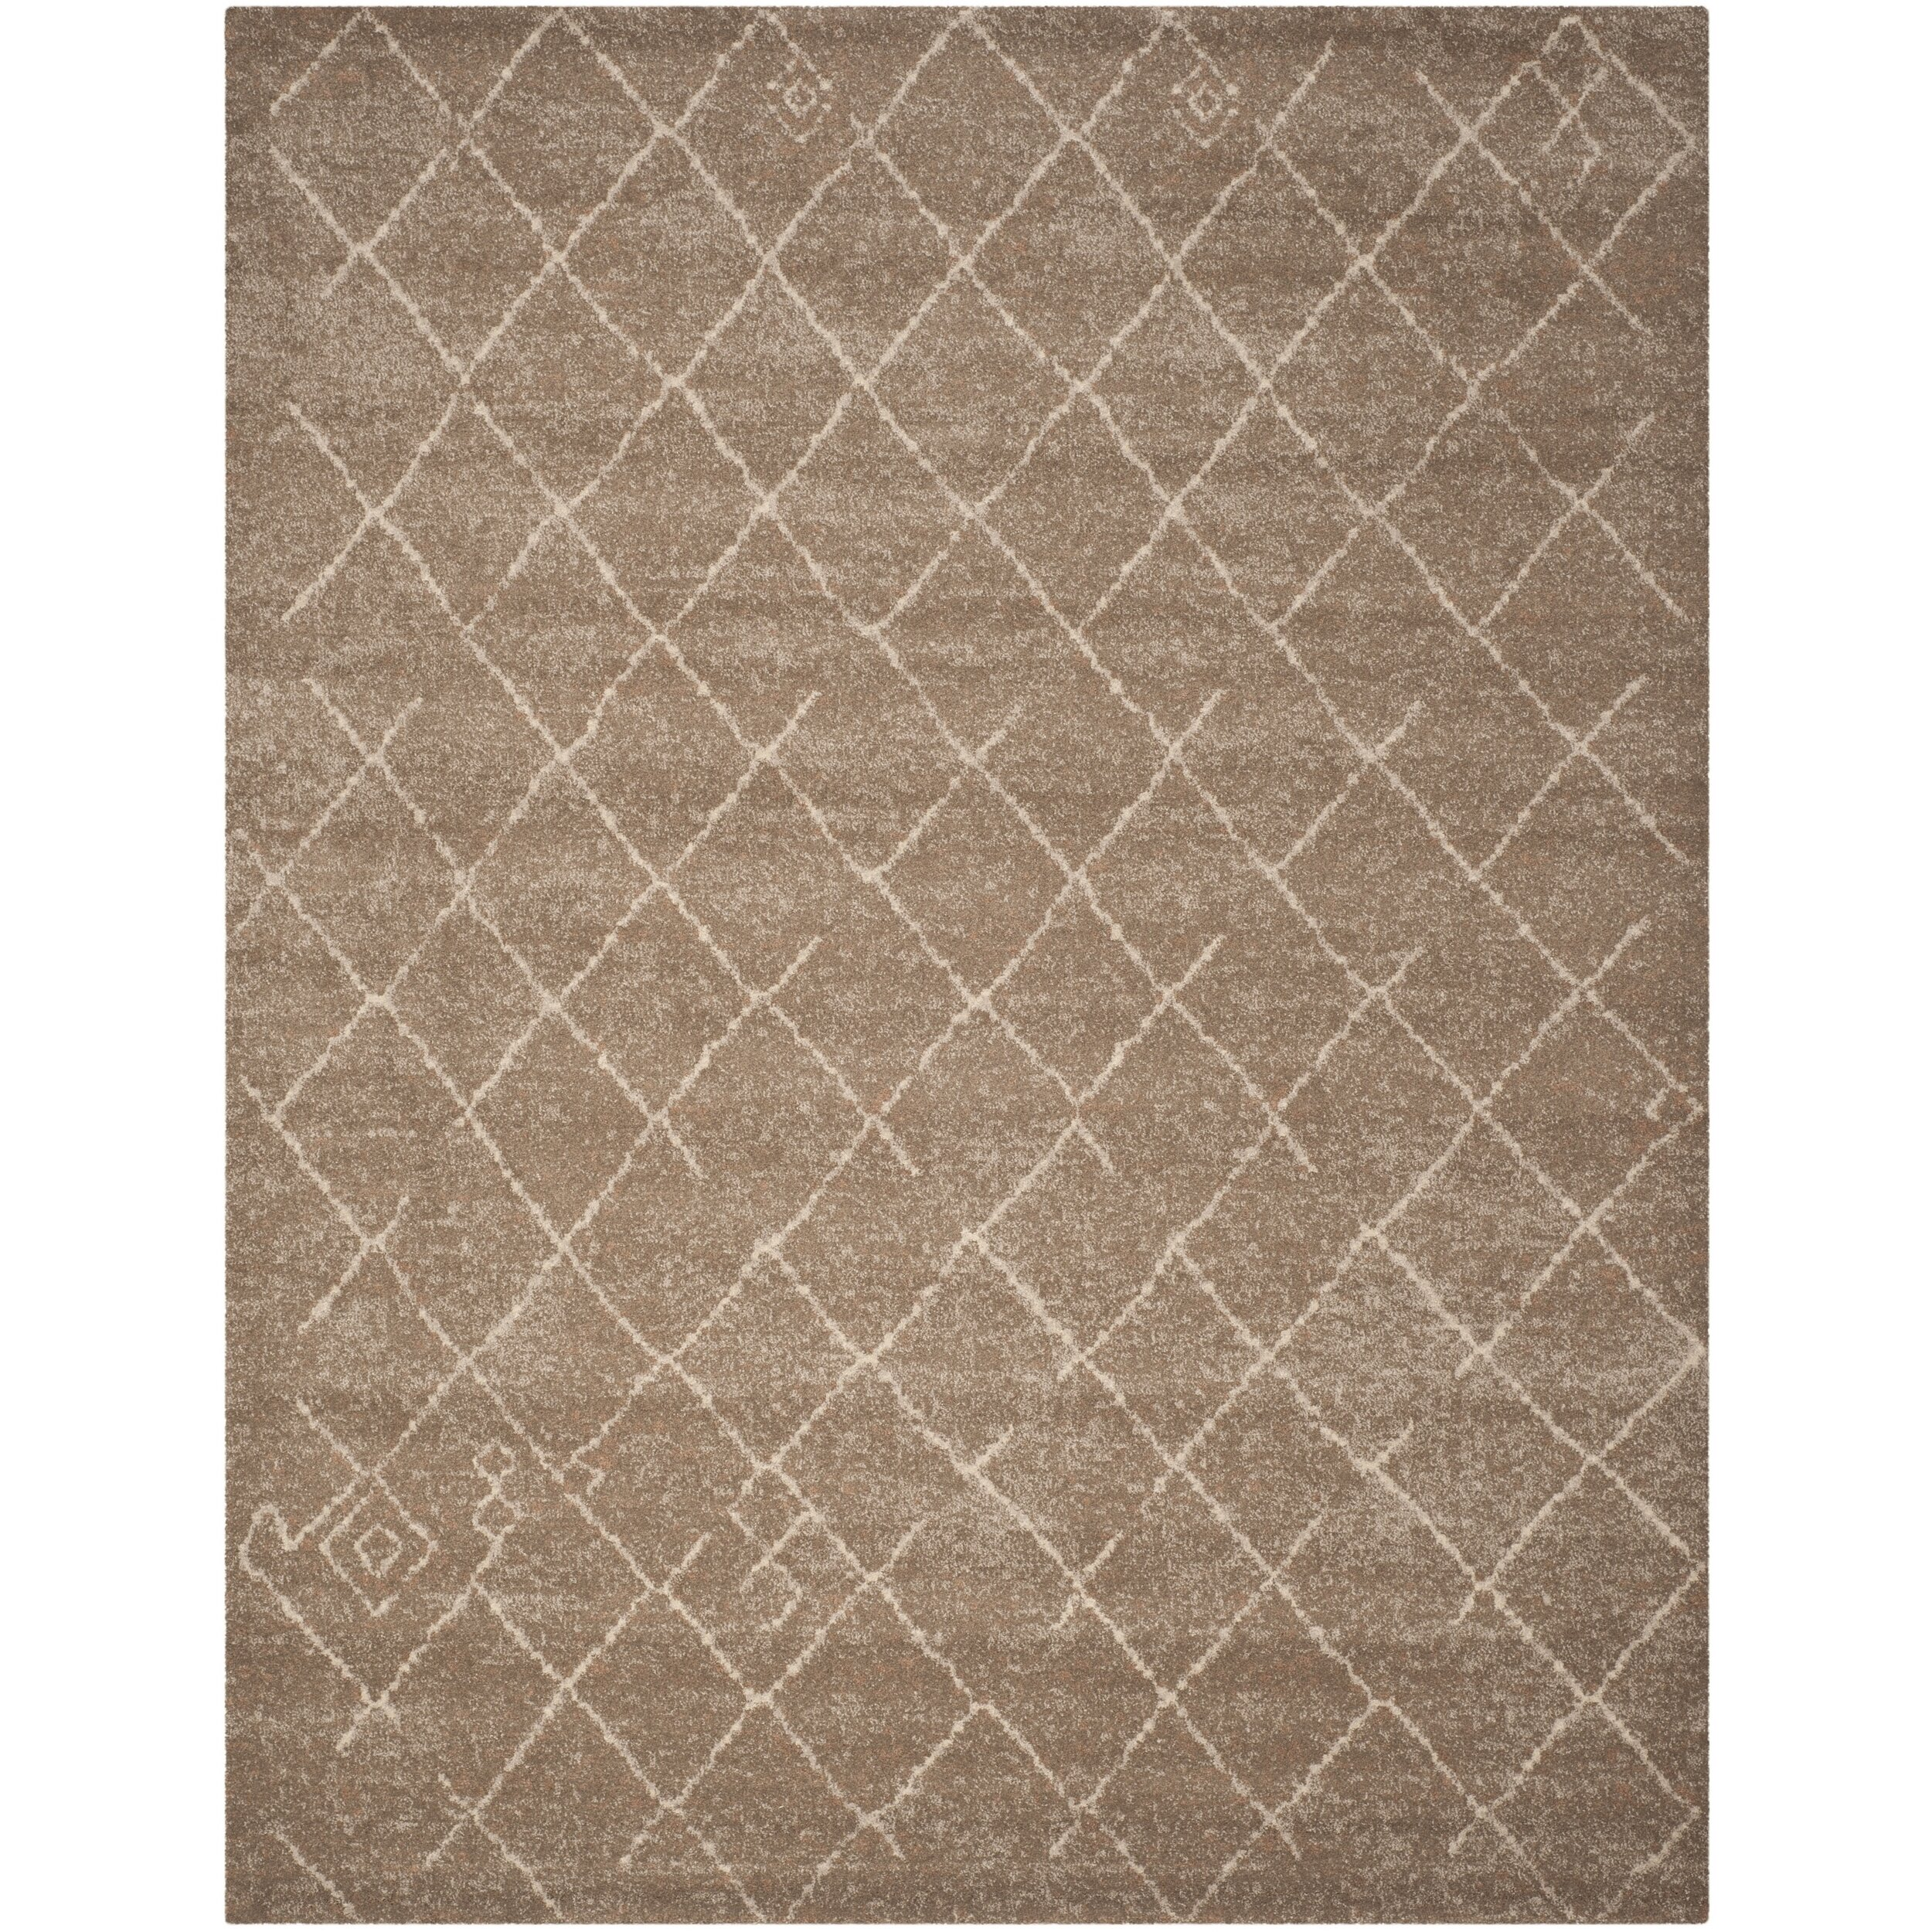 Safavieh Tunisia Brown Area Rug Amp Reviews Wayfair